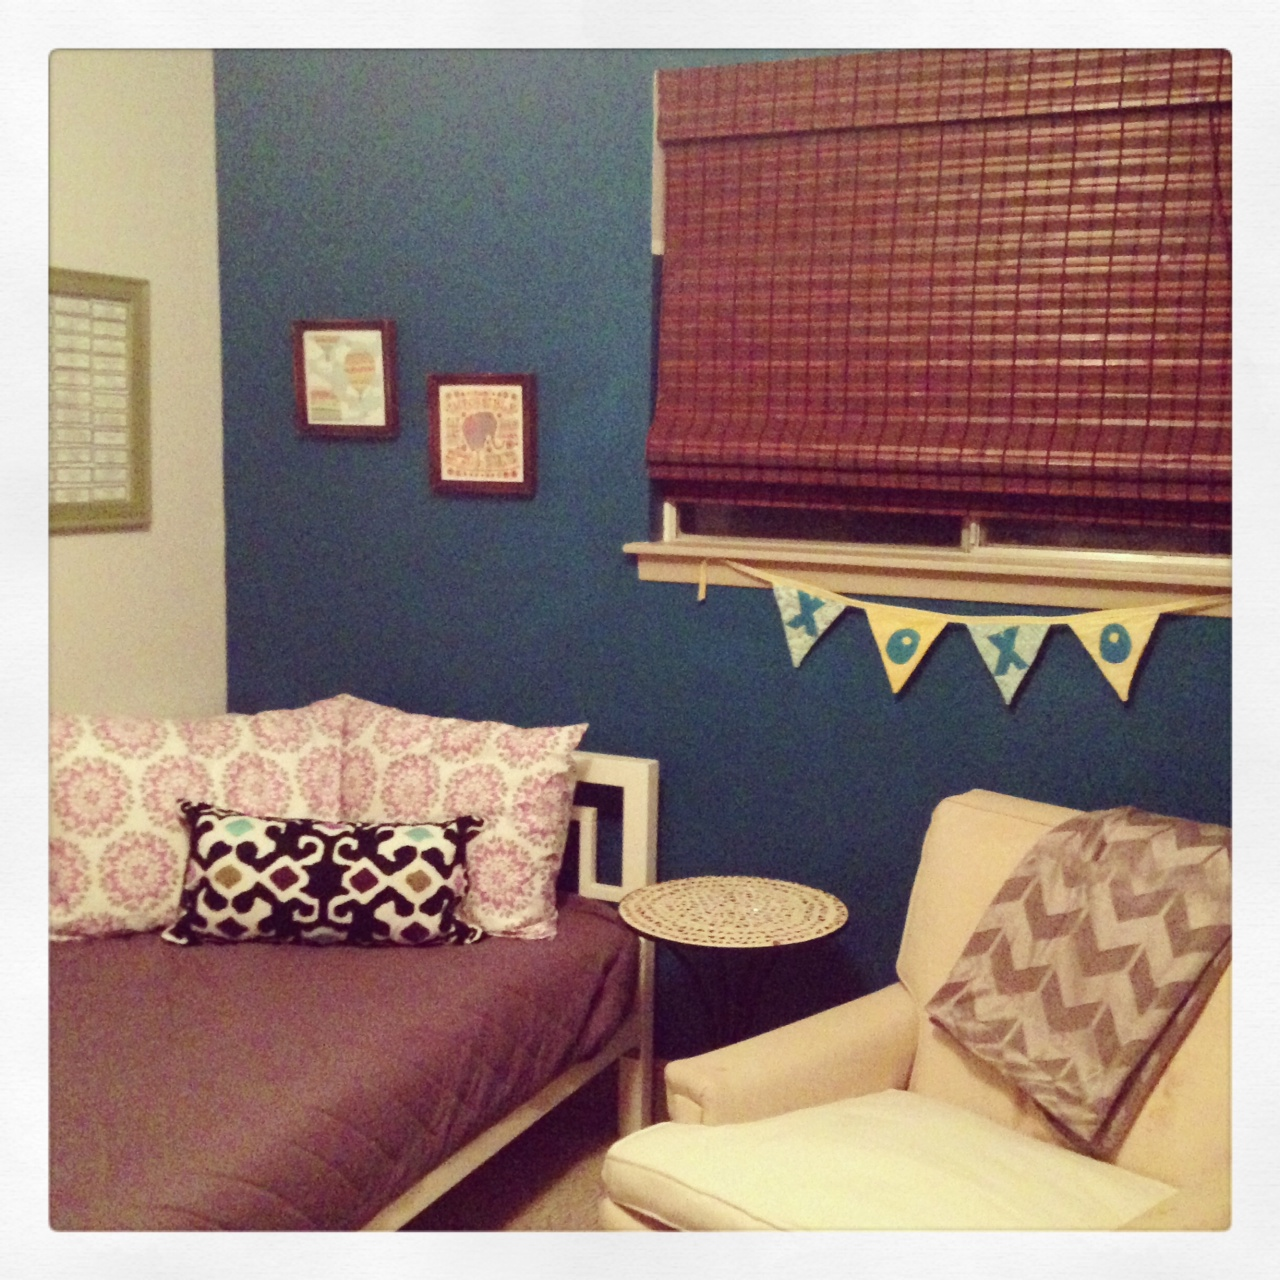 The teal accent wall.And worst iPhone photo (it was nighttime).